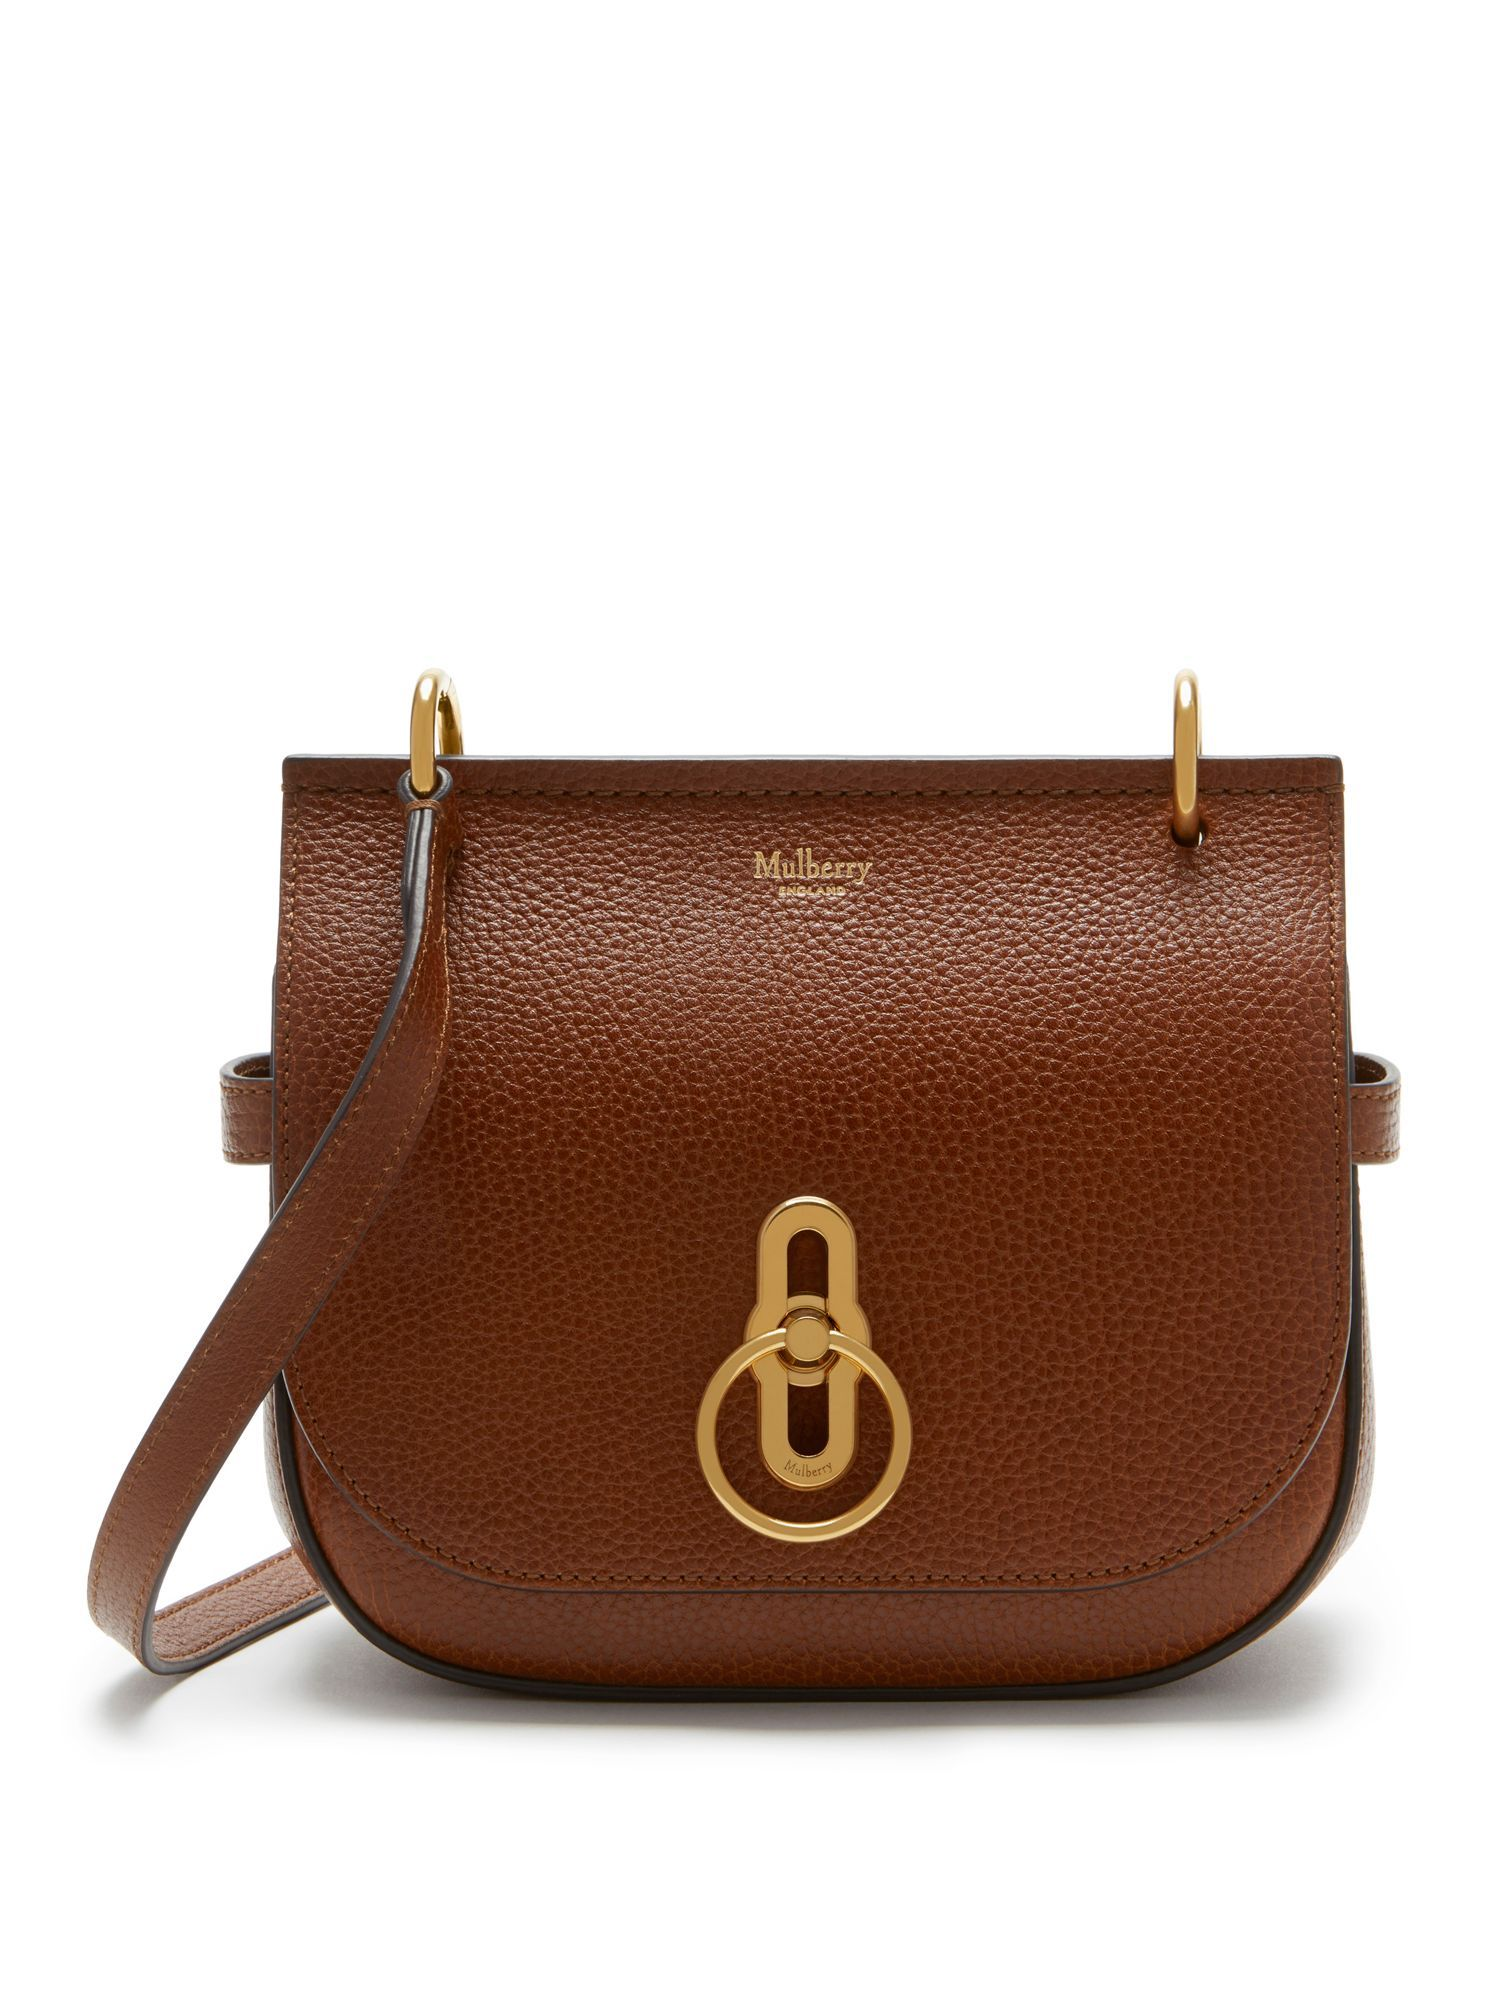 e2f609215e7c Mulberry Amberley Small satchel crossbody bag.